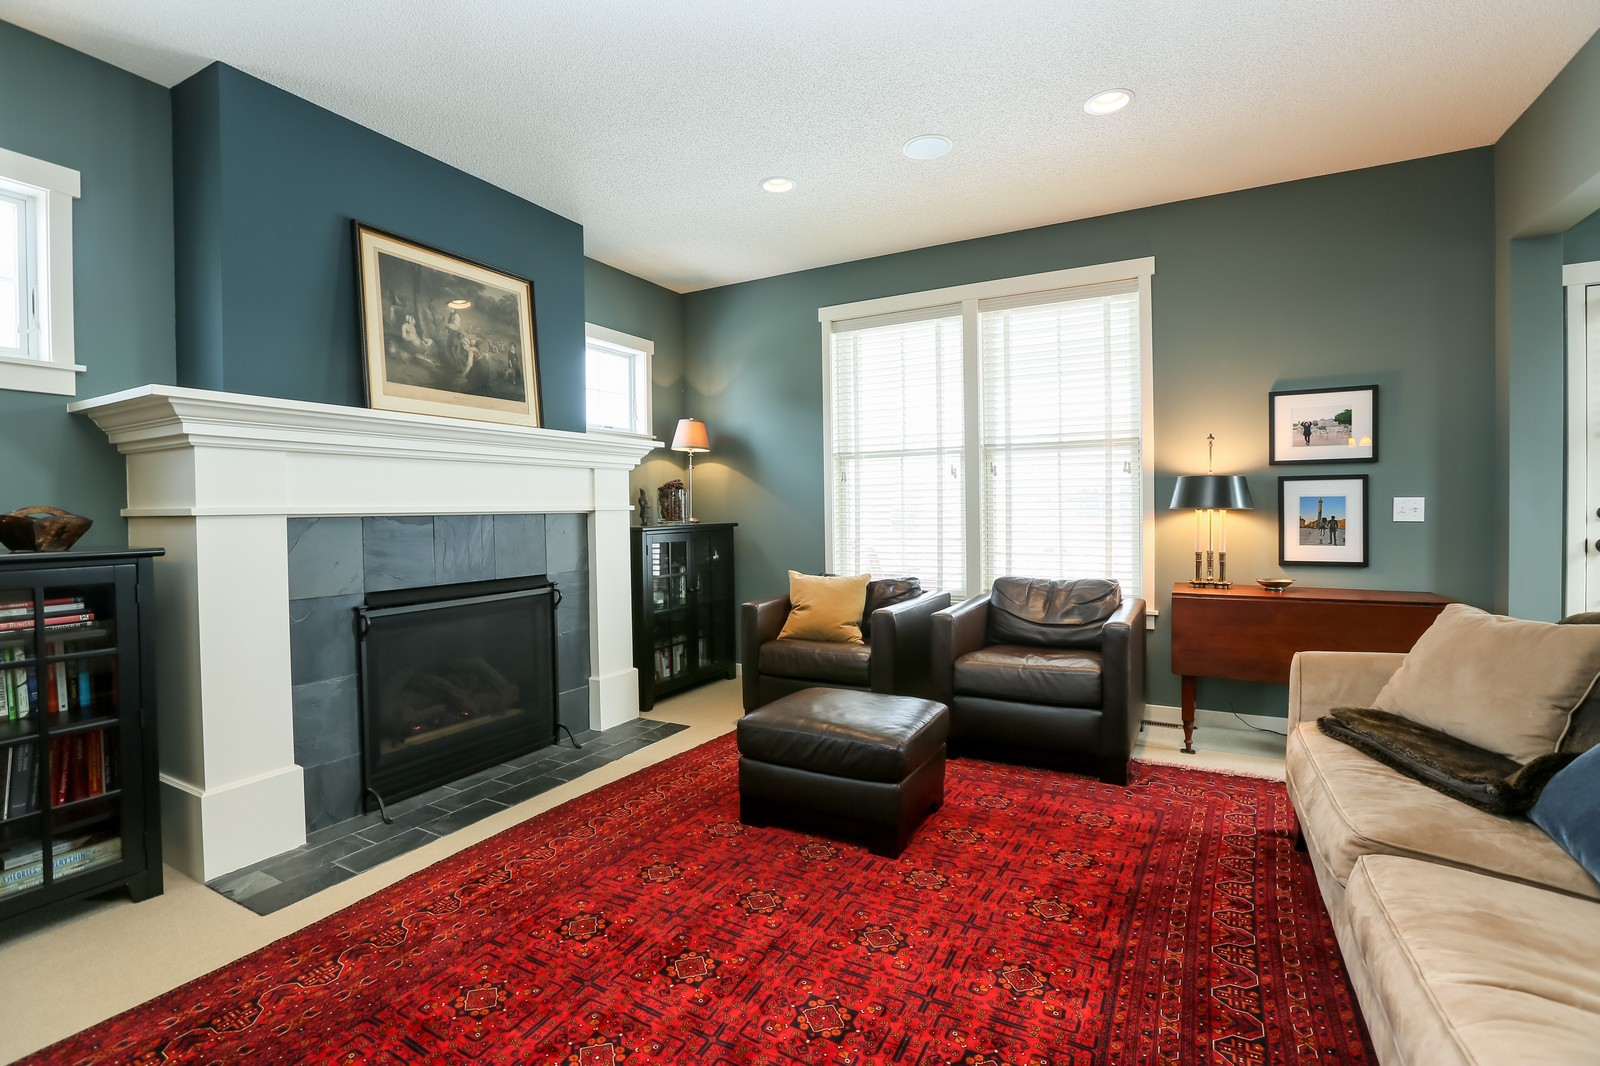 Real Estate Photography - 170 Rutherford Rd, Stillwater, MN, 55082 - Living Room